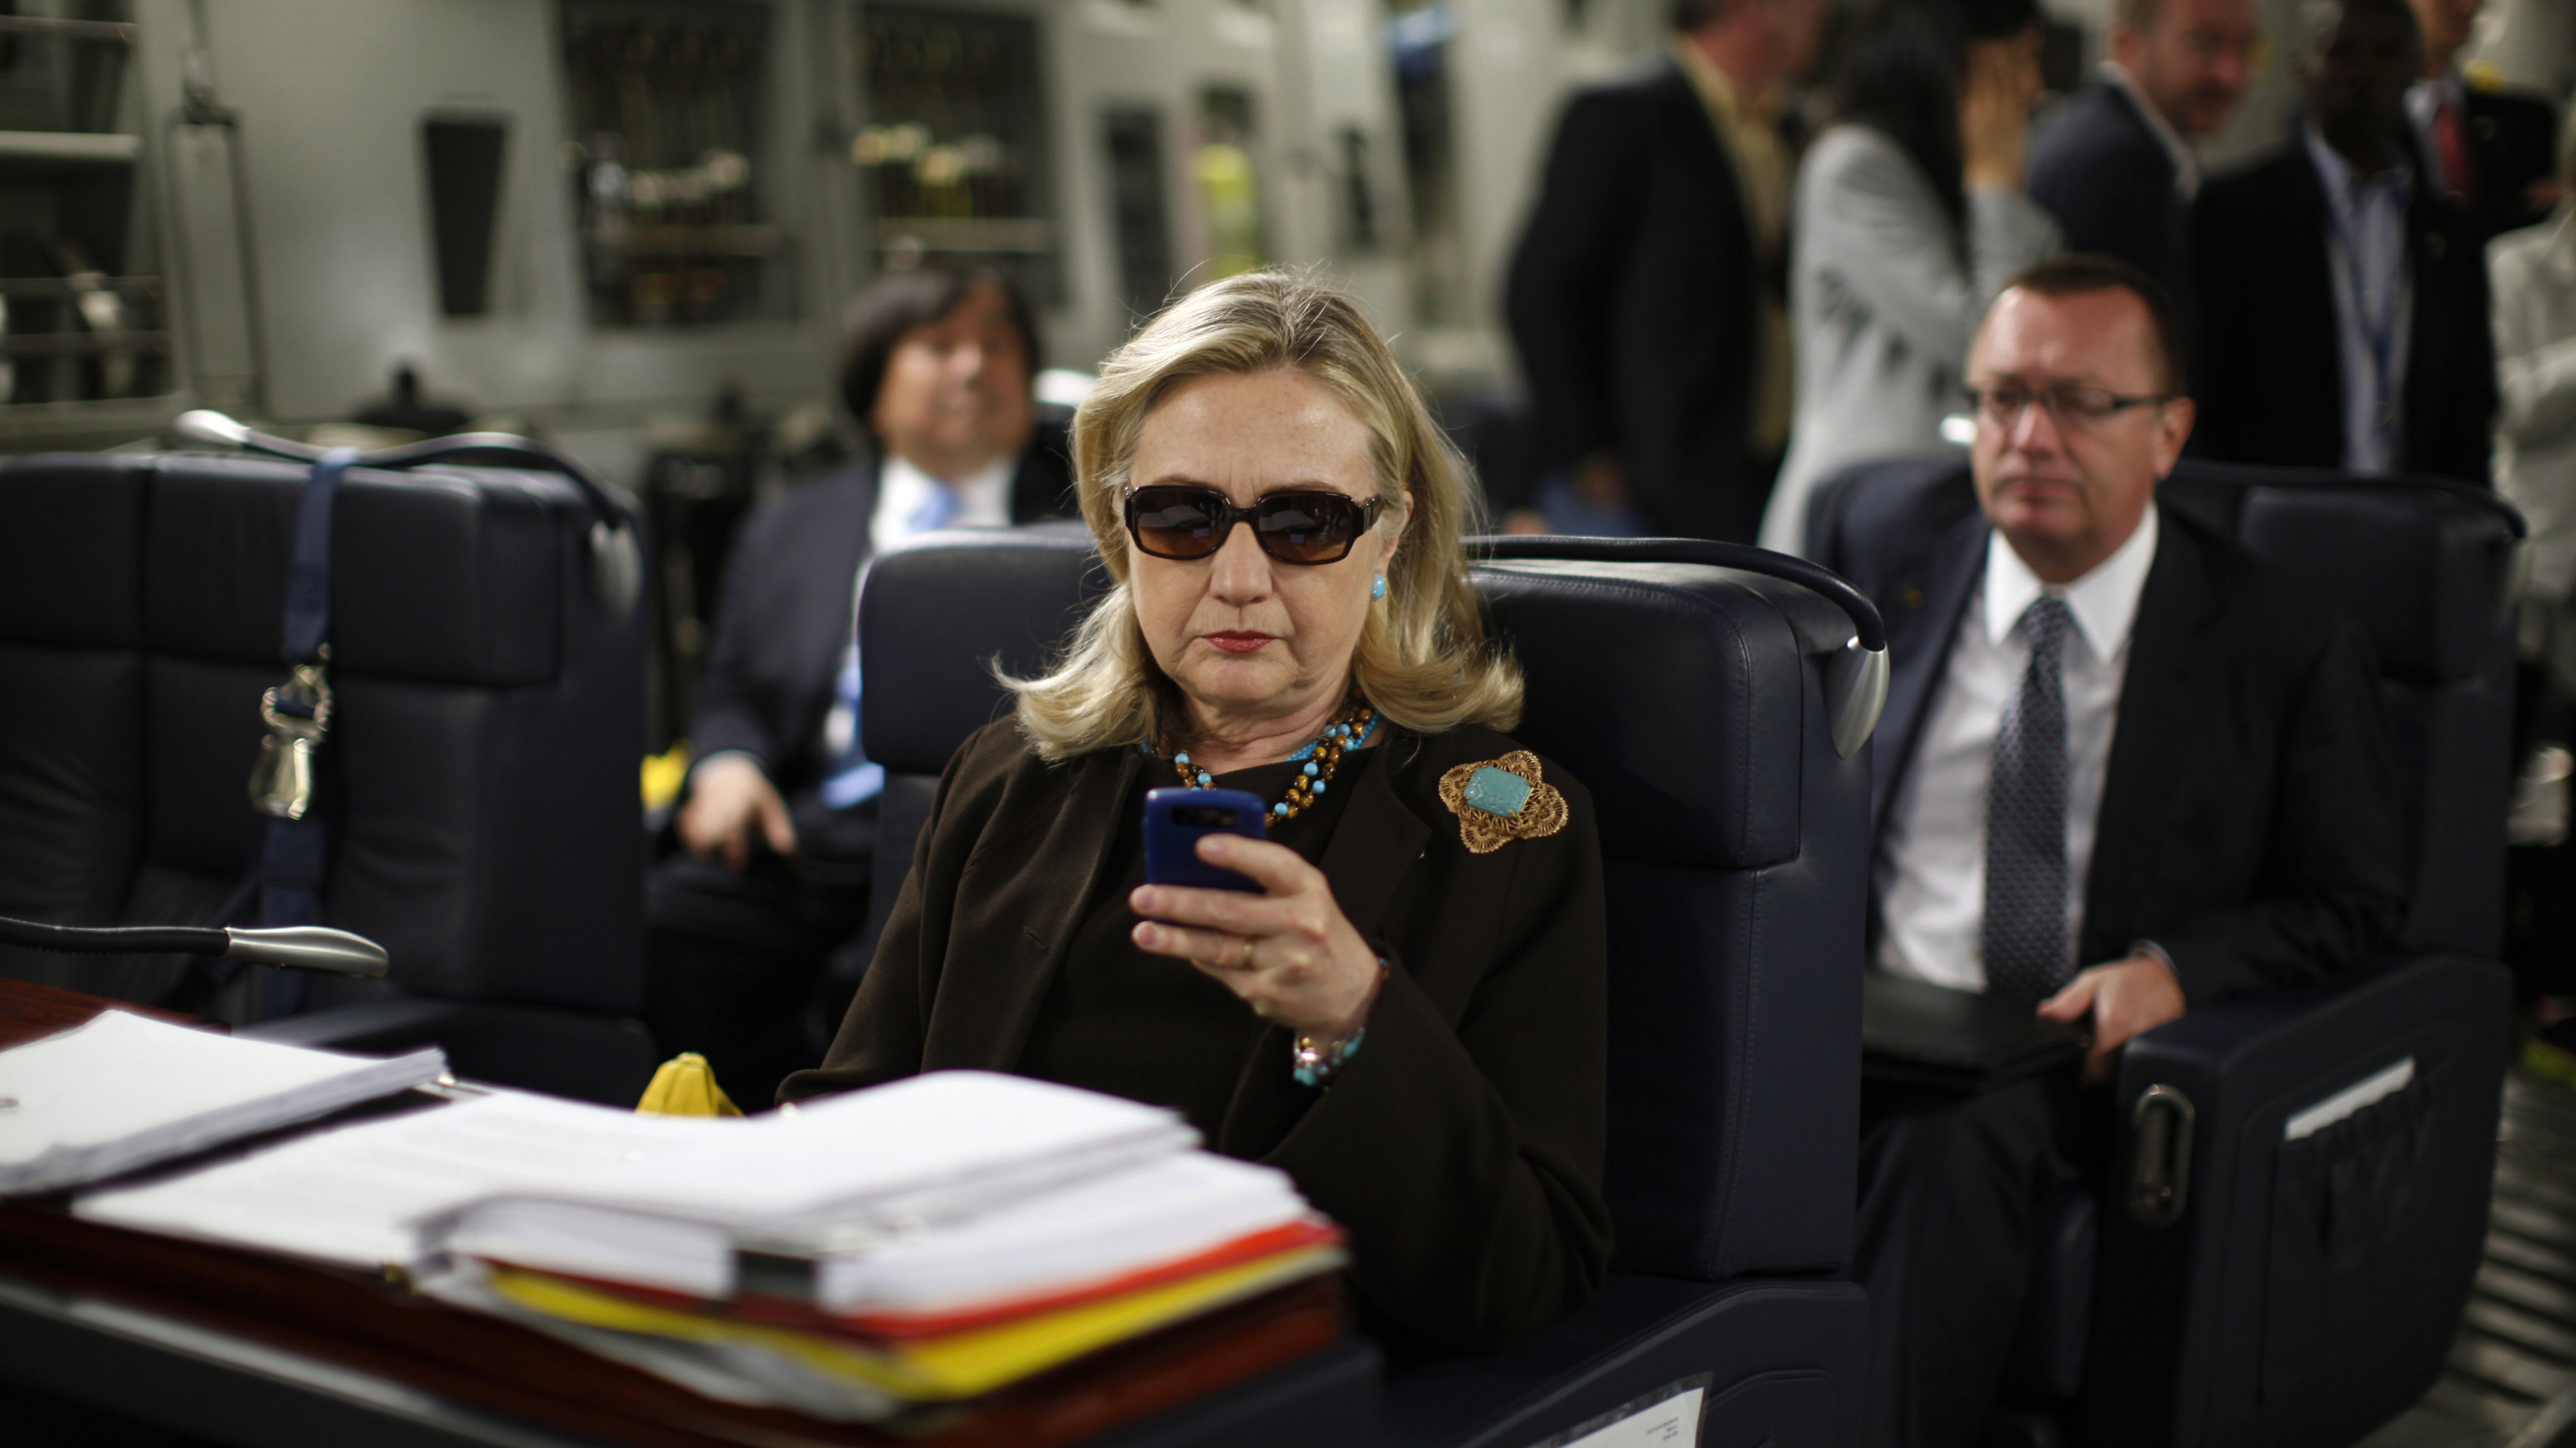 hilary clinton checking phone email